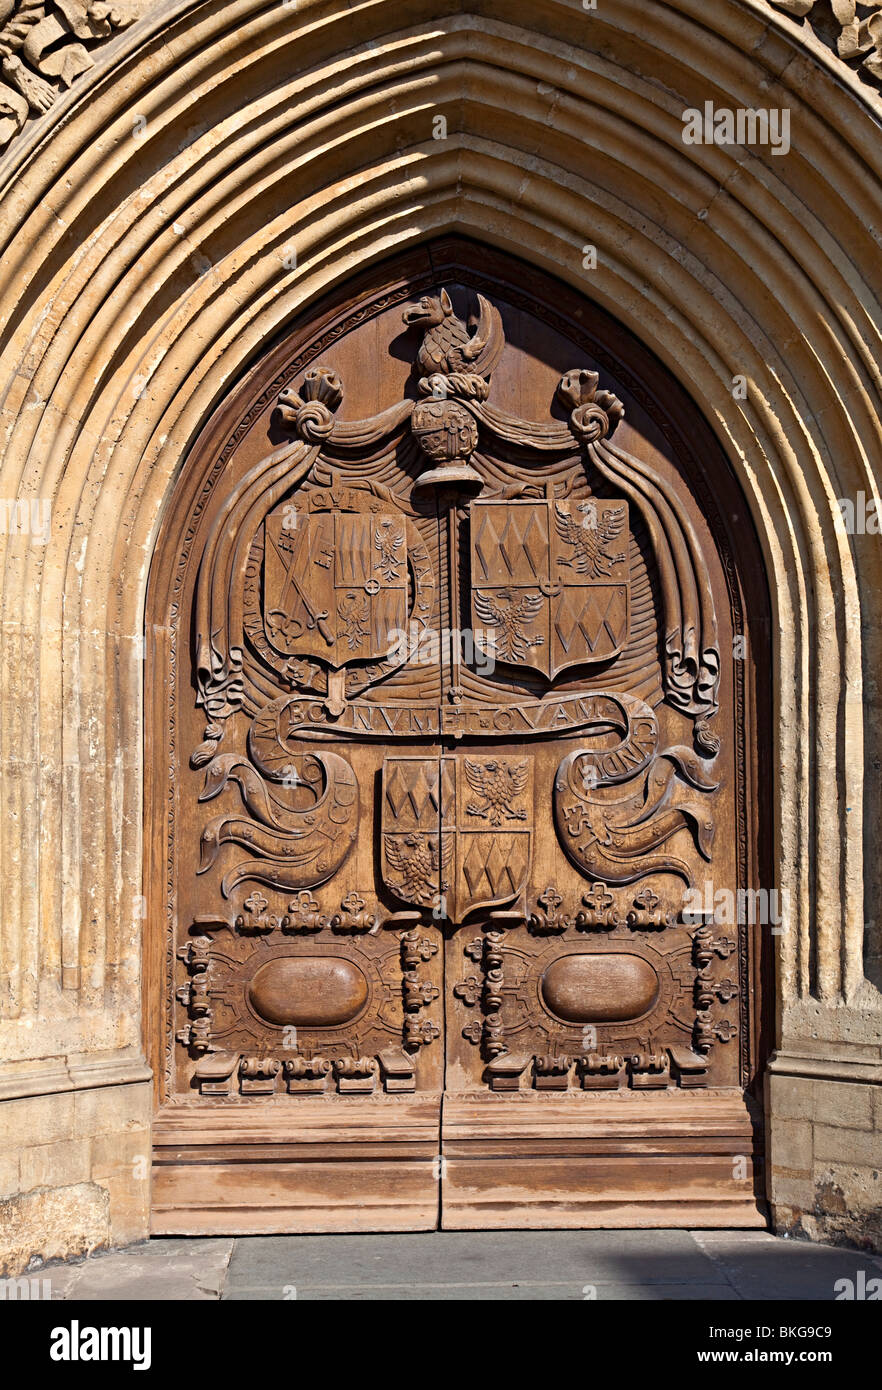 Carved wooden door with heraldic shields Bath abbey England UK - Stock Image